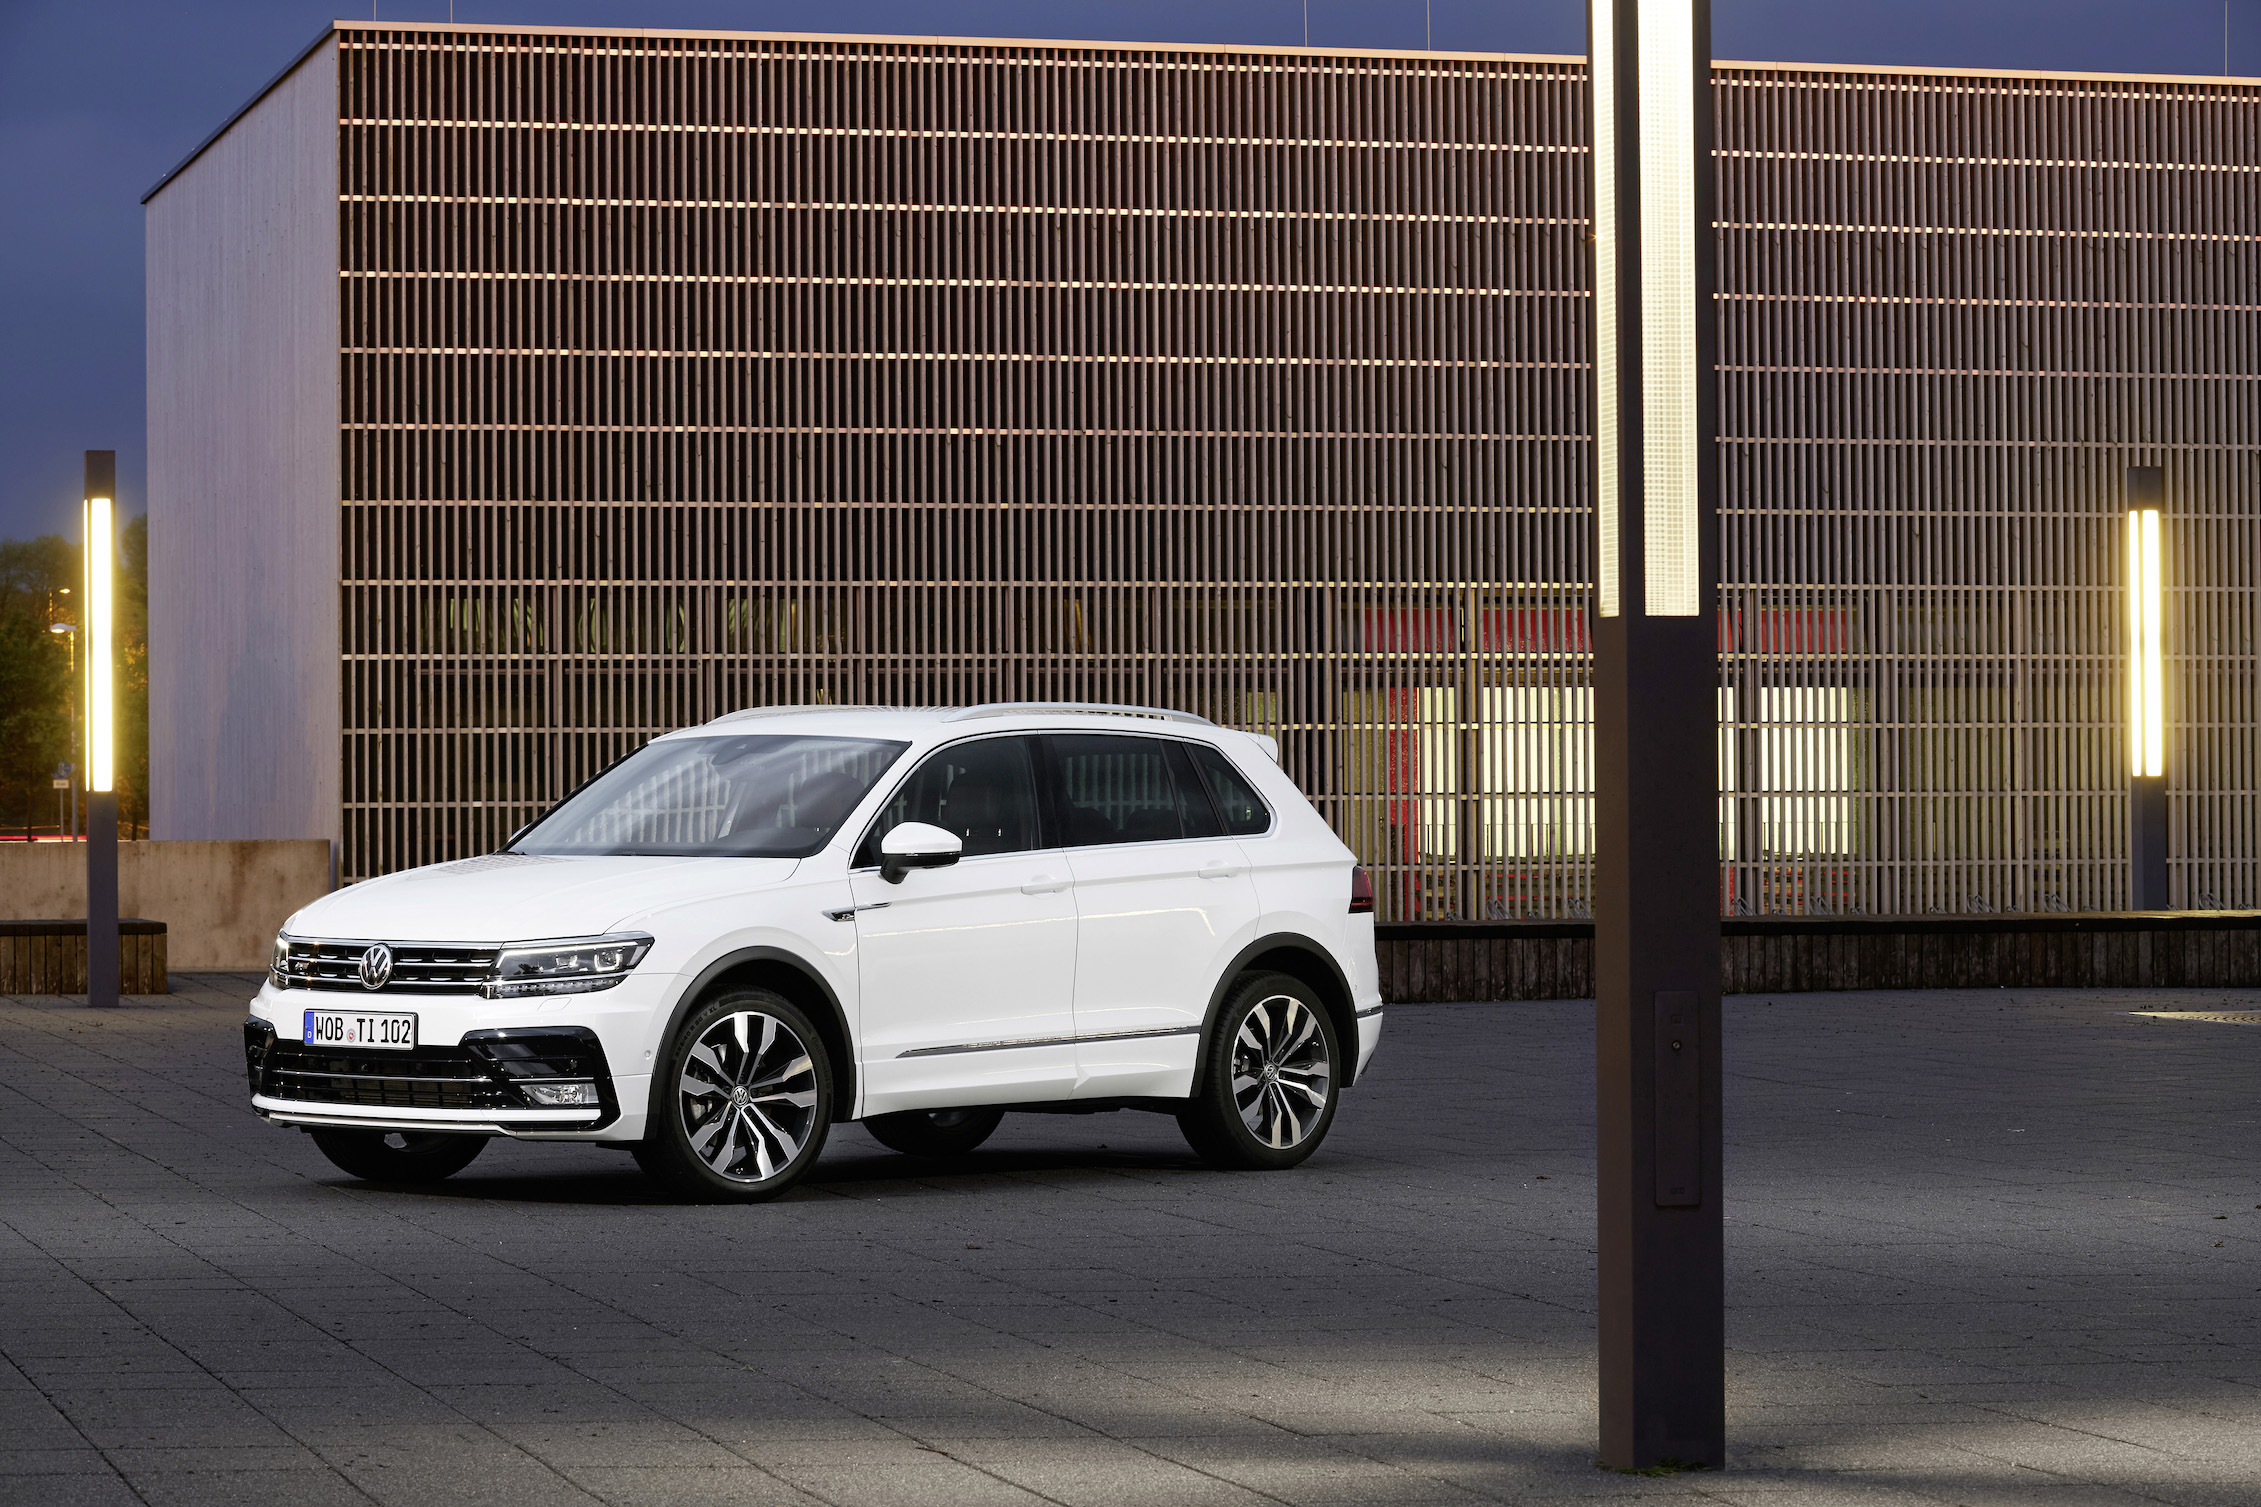 Volkswagen Middle East Debuts R-Line Packages for the all-new Tiguan